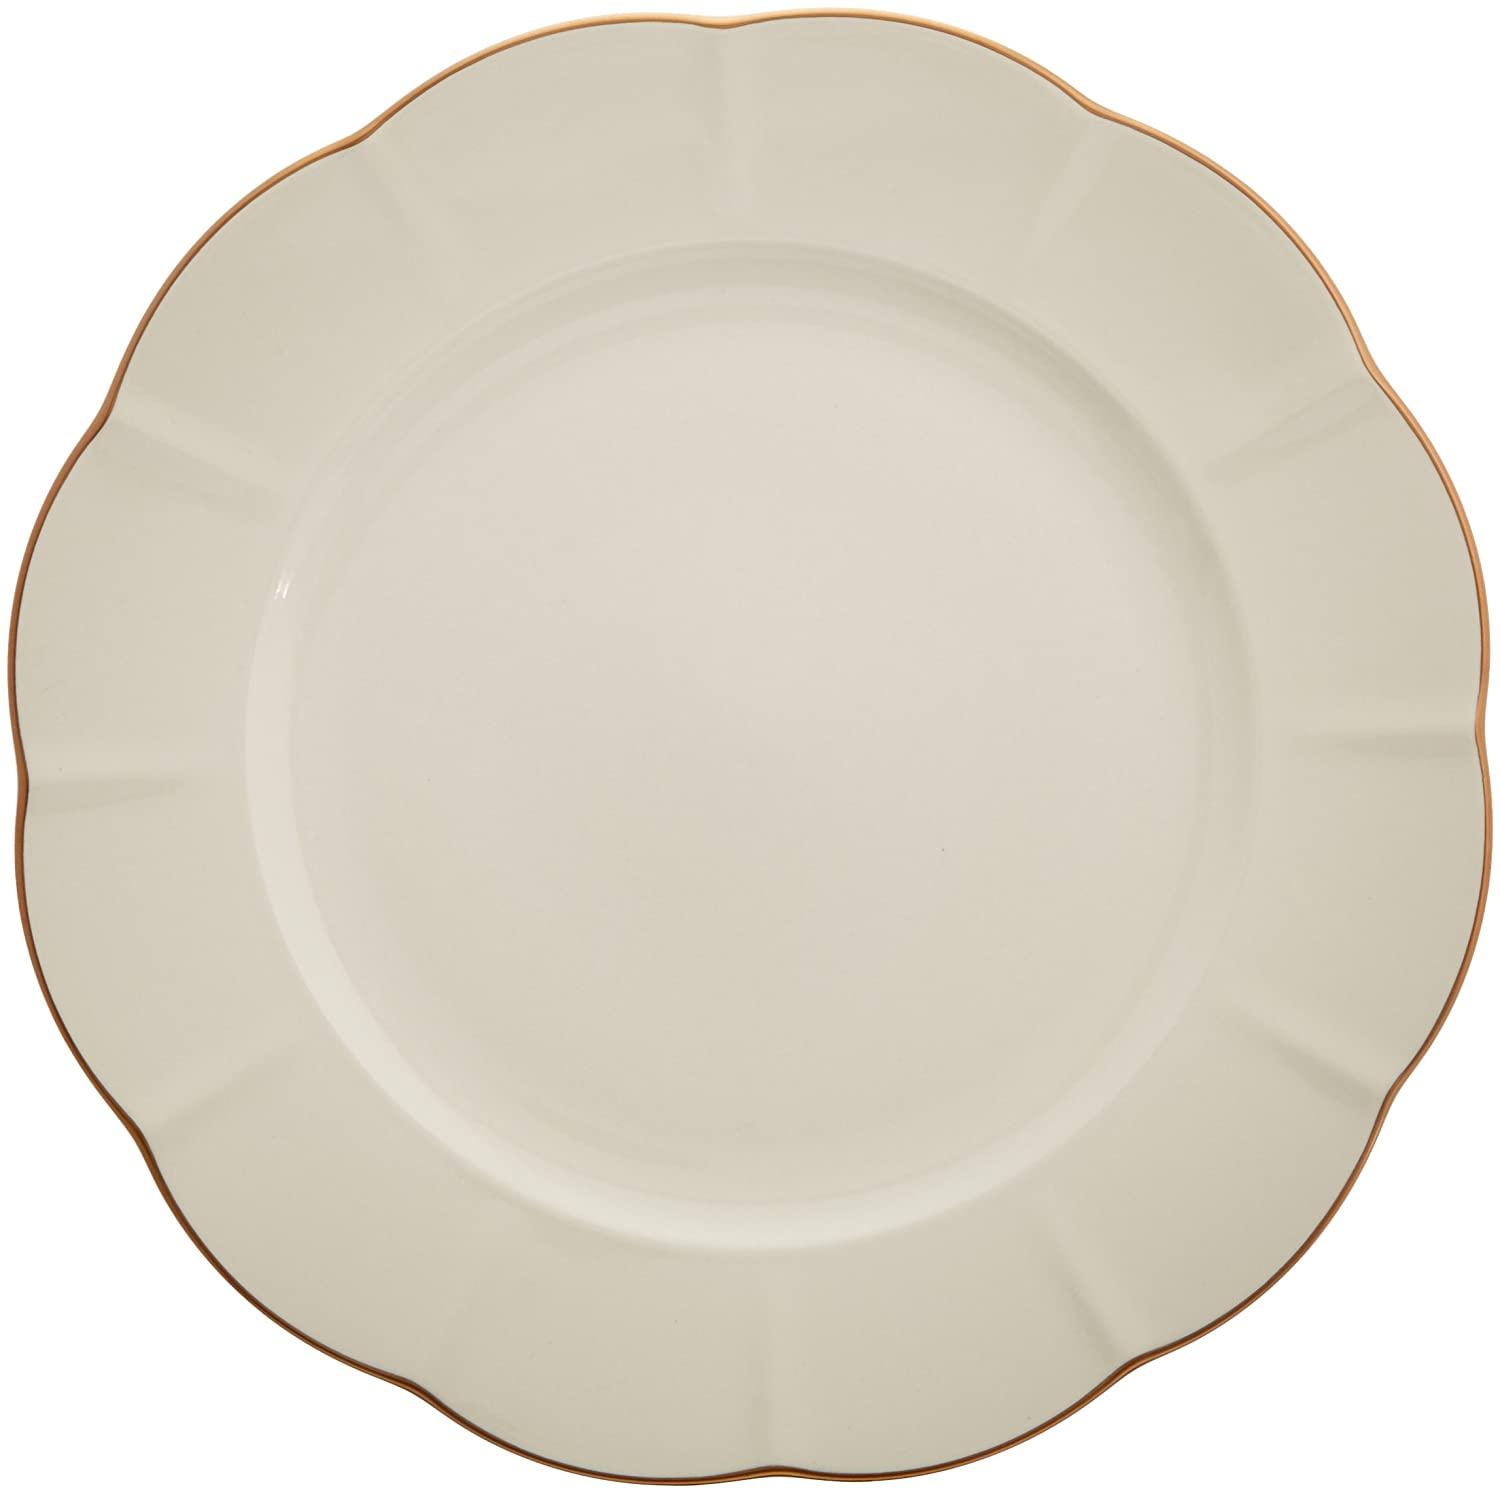 5a50de7360 Amazon.com: Marchesa Shades of White Dinner Plate by Lenox: Kitchen & Dining